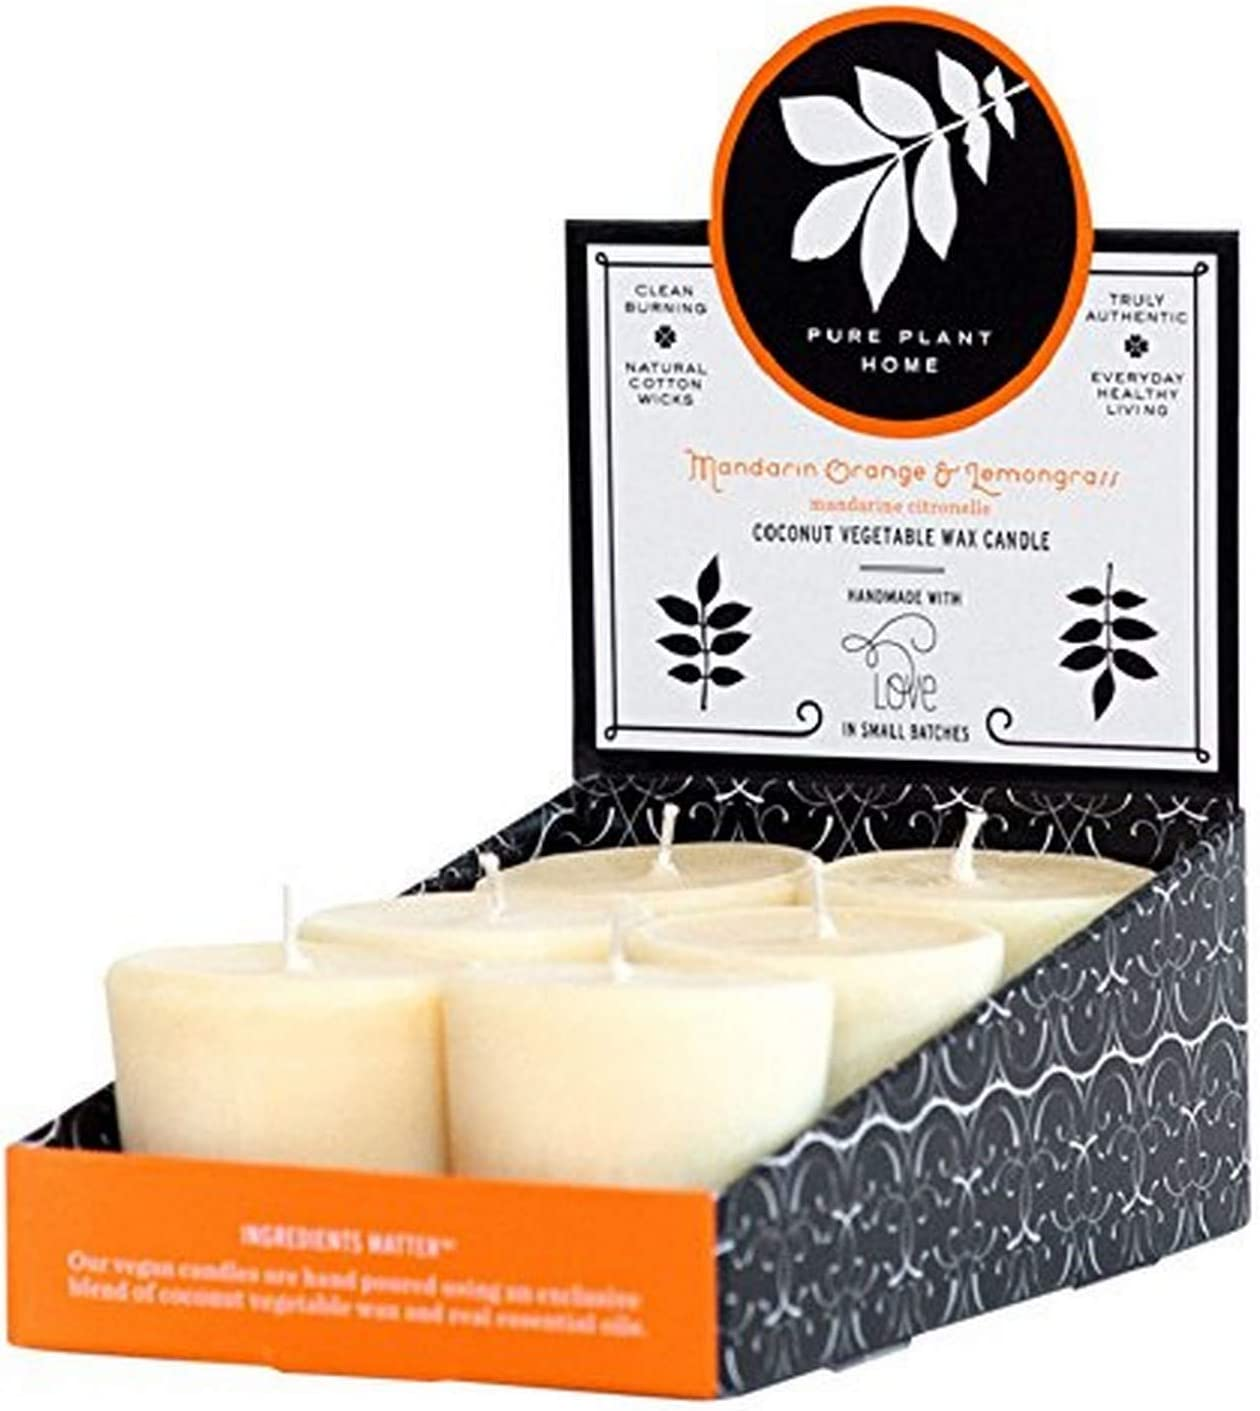 Pure Plant Home, Mandarian Orange Lemongrass Votive, 6 Count